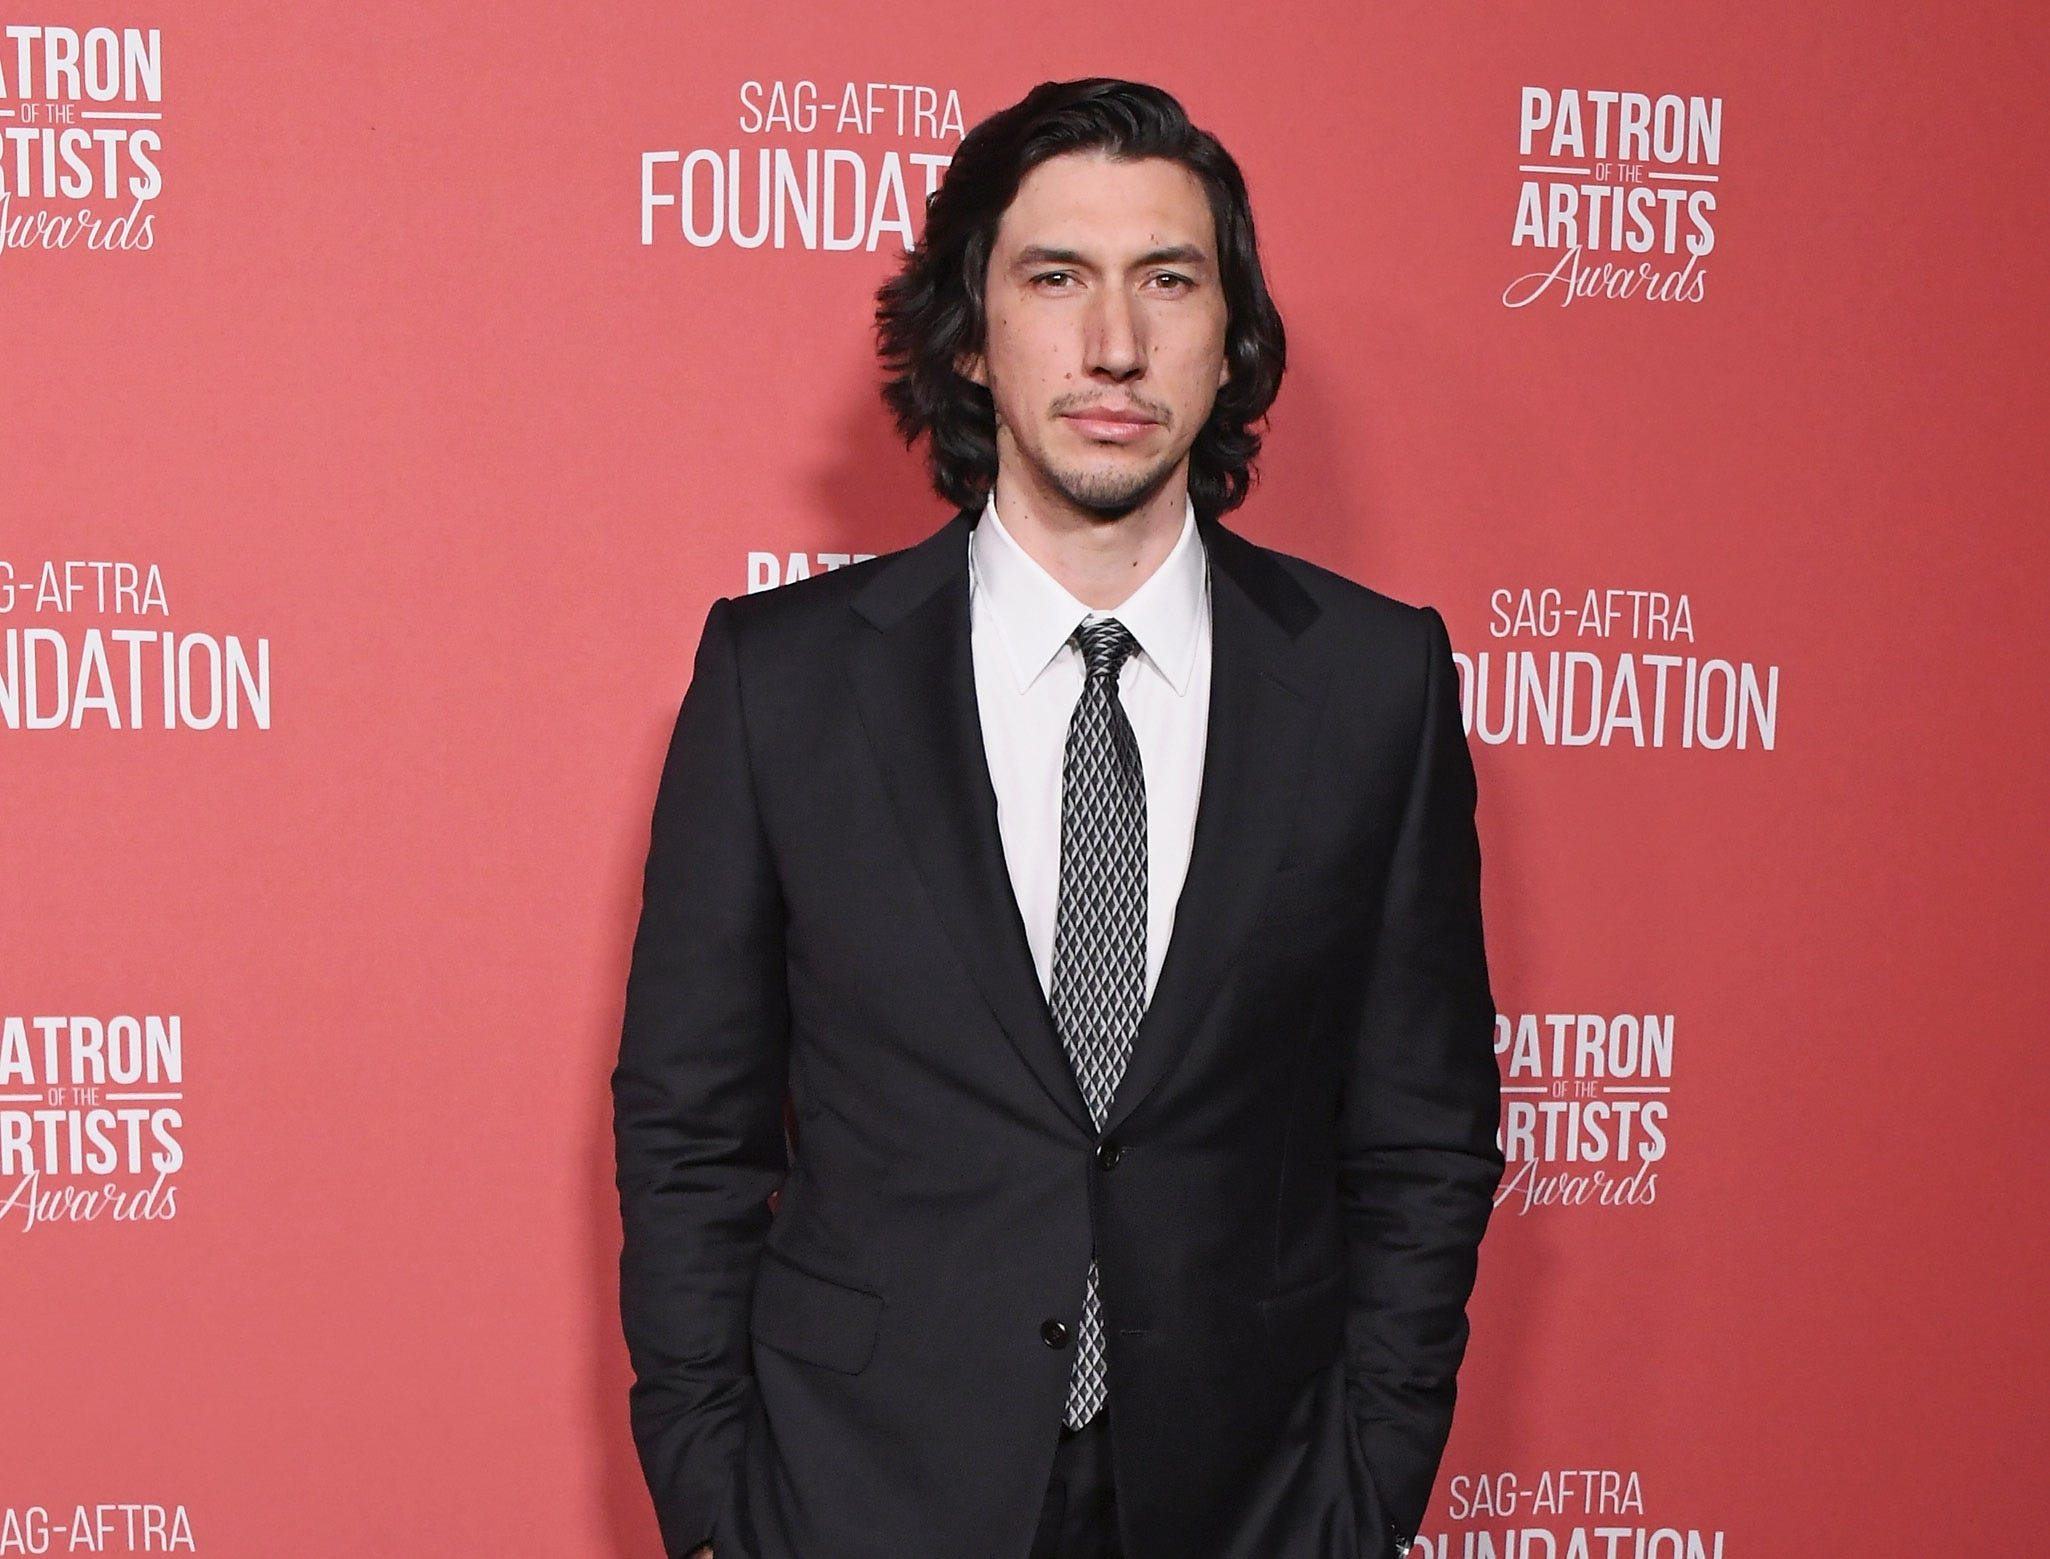 BEVERLY HILLS, CA - NOVEMBER 08:  Adam Driver attends SAG-AFTRA Foundation's 3rd Annual Patron Of The Artists Awards at Wallis Annenberg Center for the Performing Arts on November 8, 2018 in Beverly Hills, California.  (Photo by Jon Kopaloff/FilmMagic) ORG XMIT: 775233471 ORIG FILE ID: 1059469648